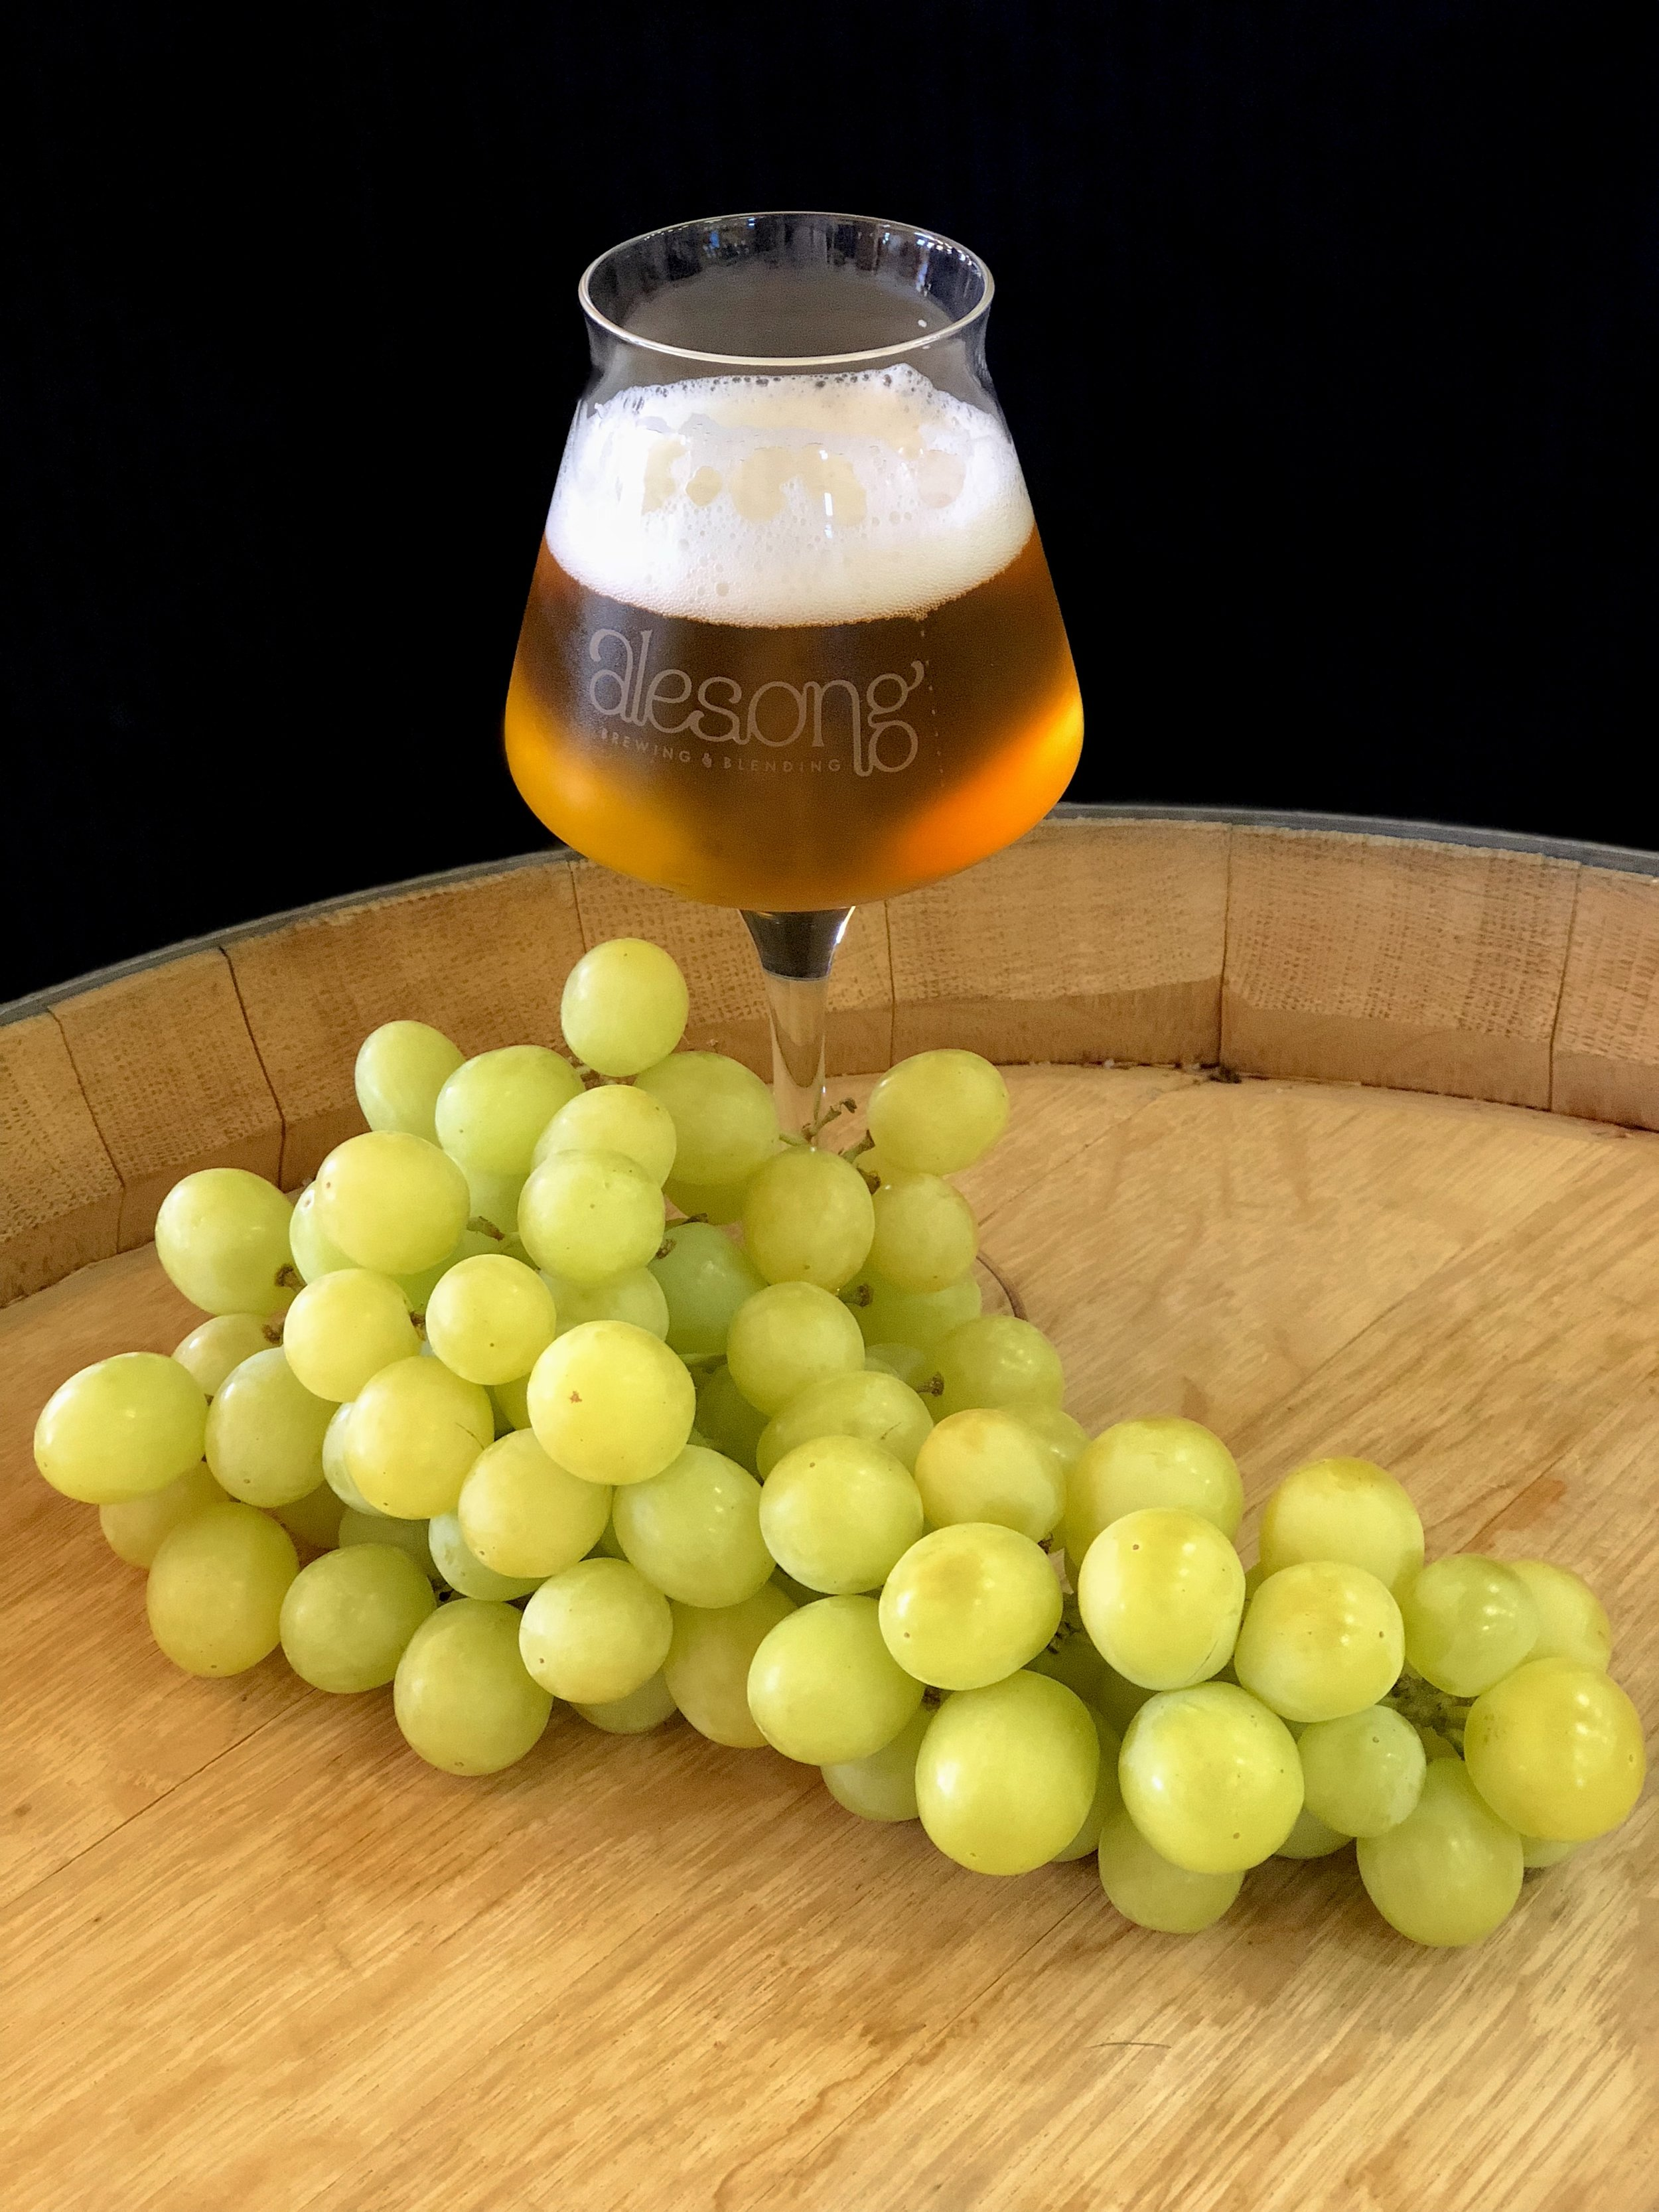 images courtesy Alesong Brewing & Blending